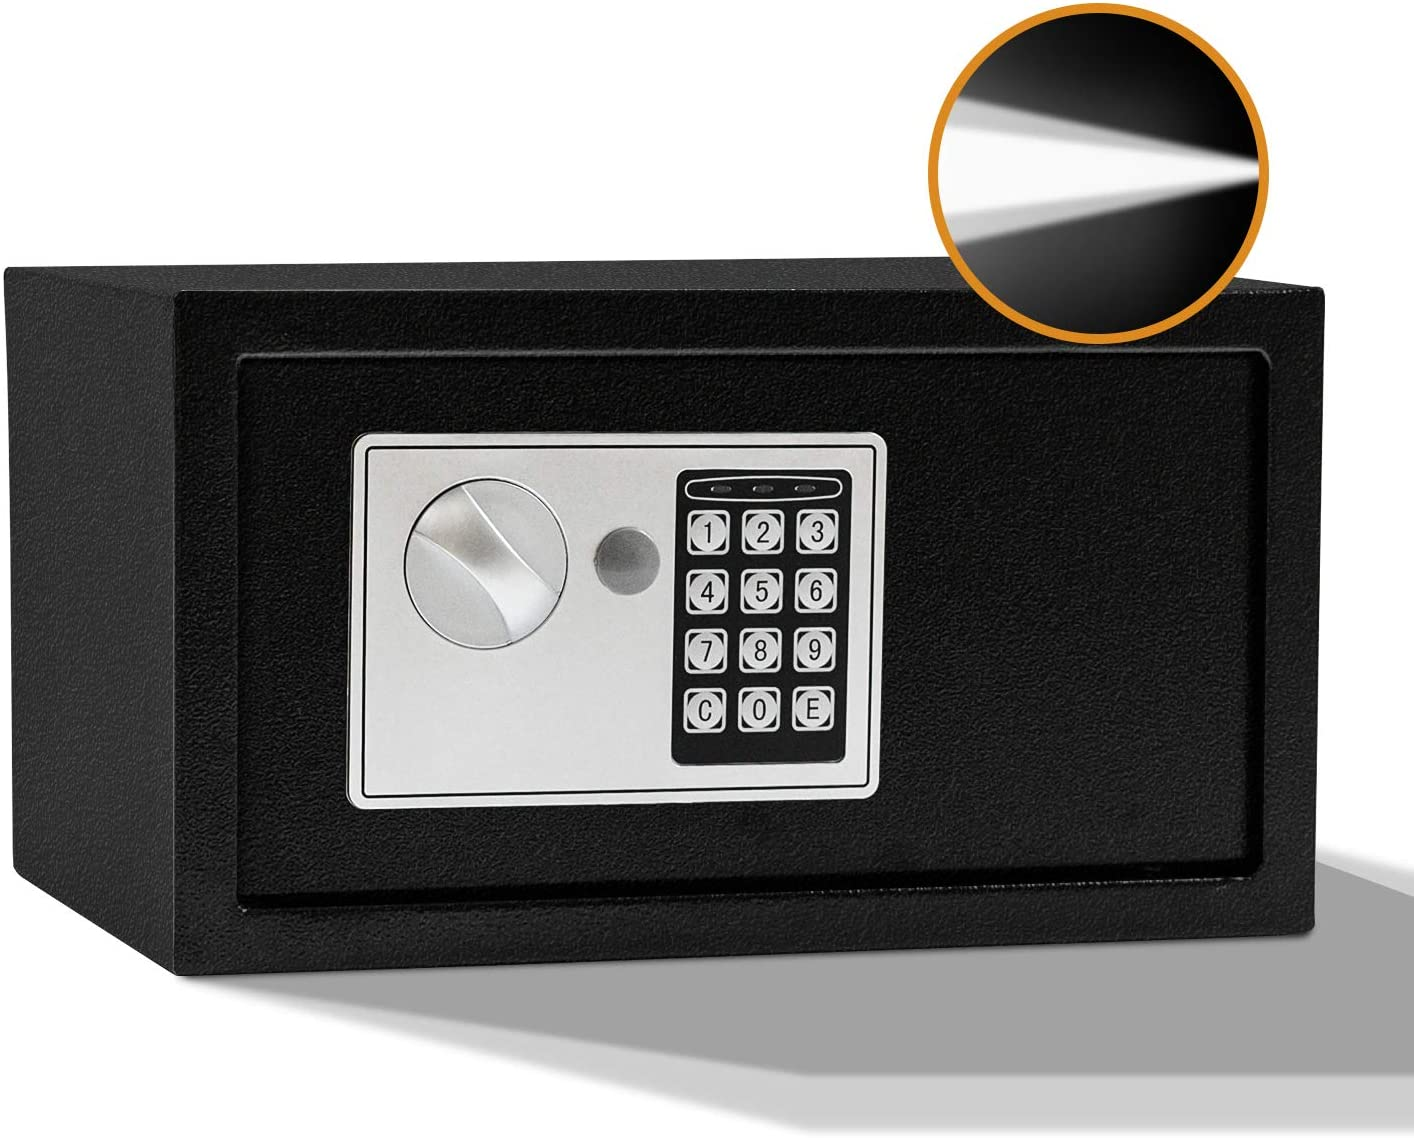 SamYerSafe Safe Box with Sensor Light,0.42 Cubic Feet Security Safe with Electronic Digital Keypad Money Safe Steel Construction Hidden with Lock,Wall or Cabinet Anchoring Design for Office Home Hotel